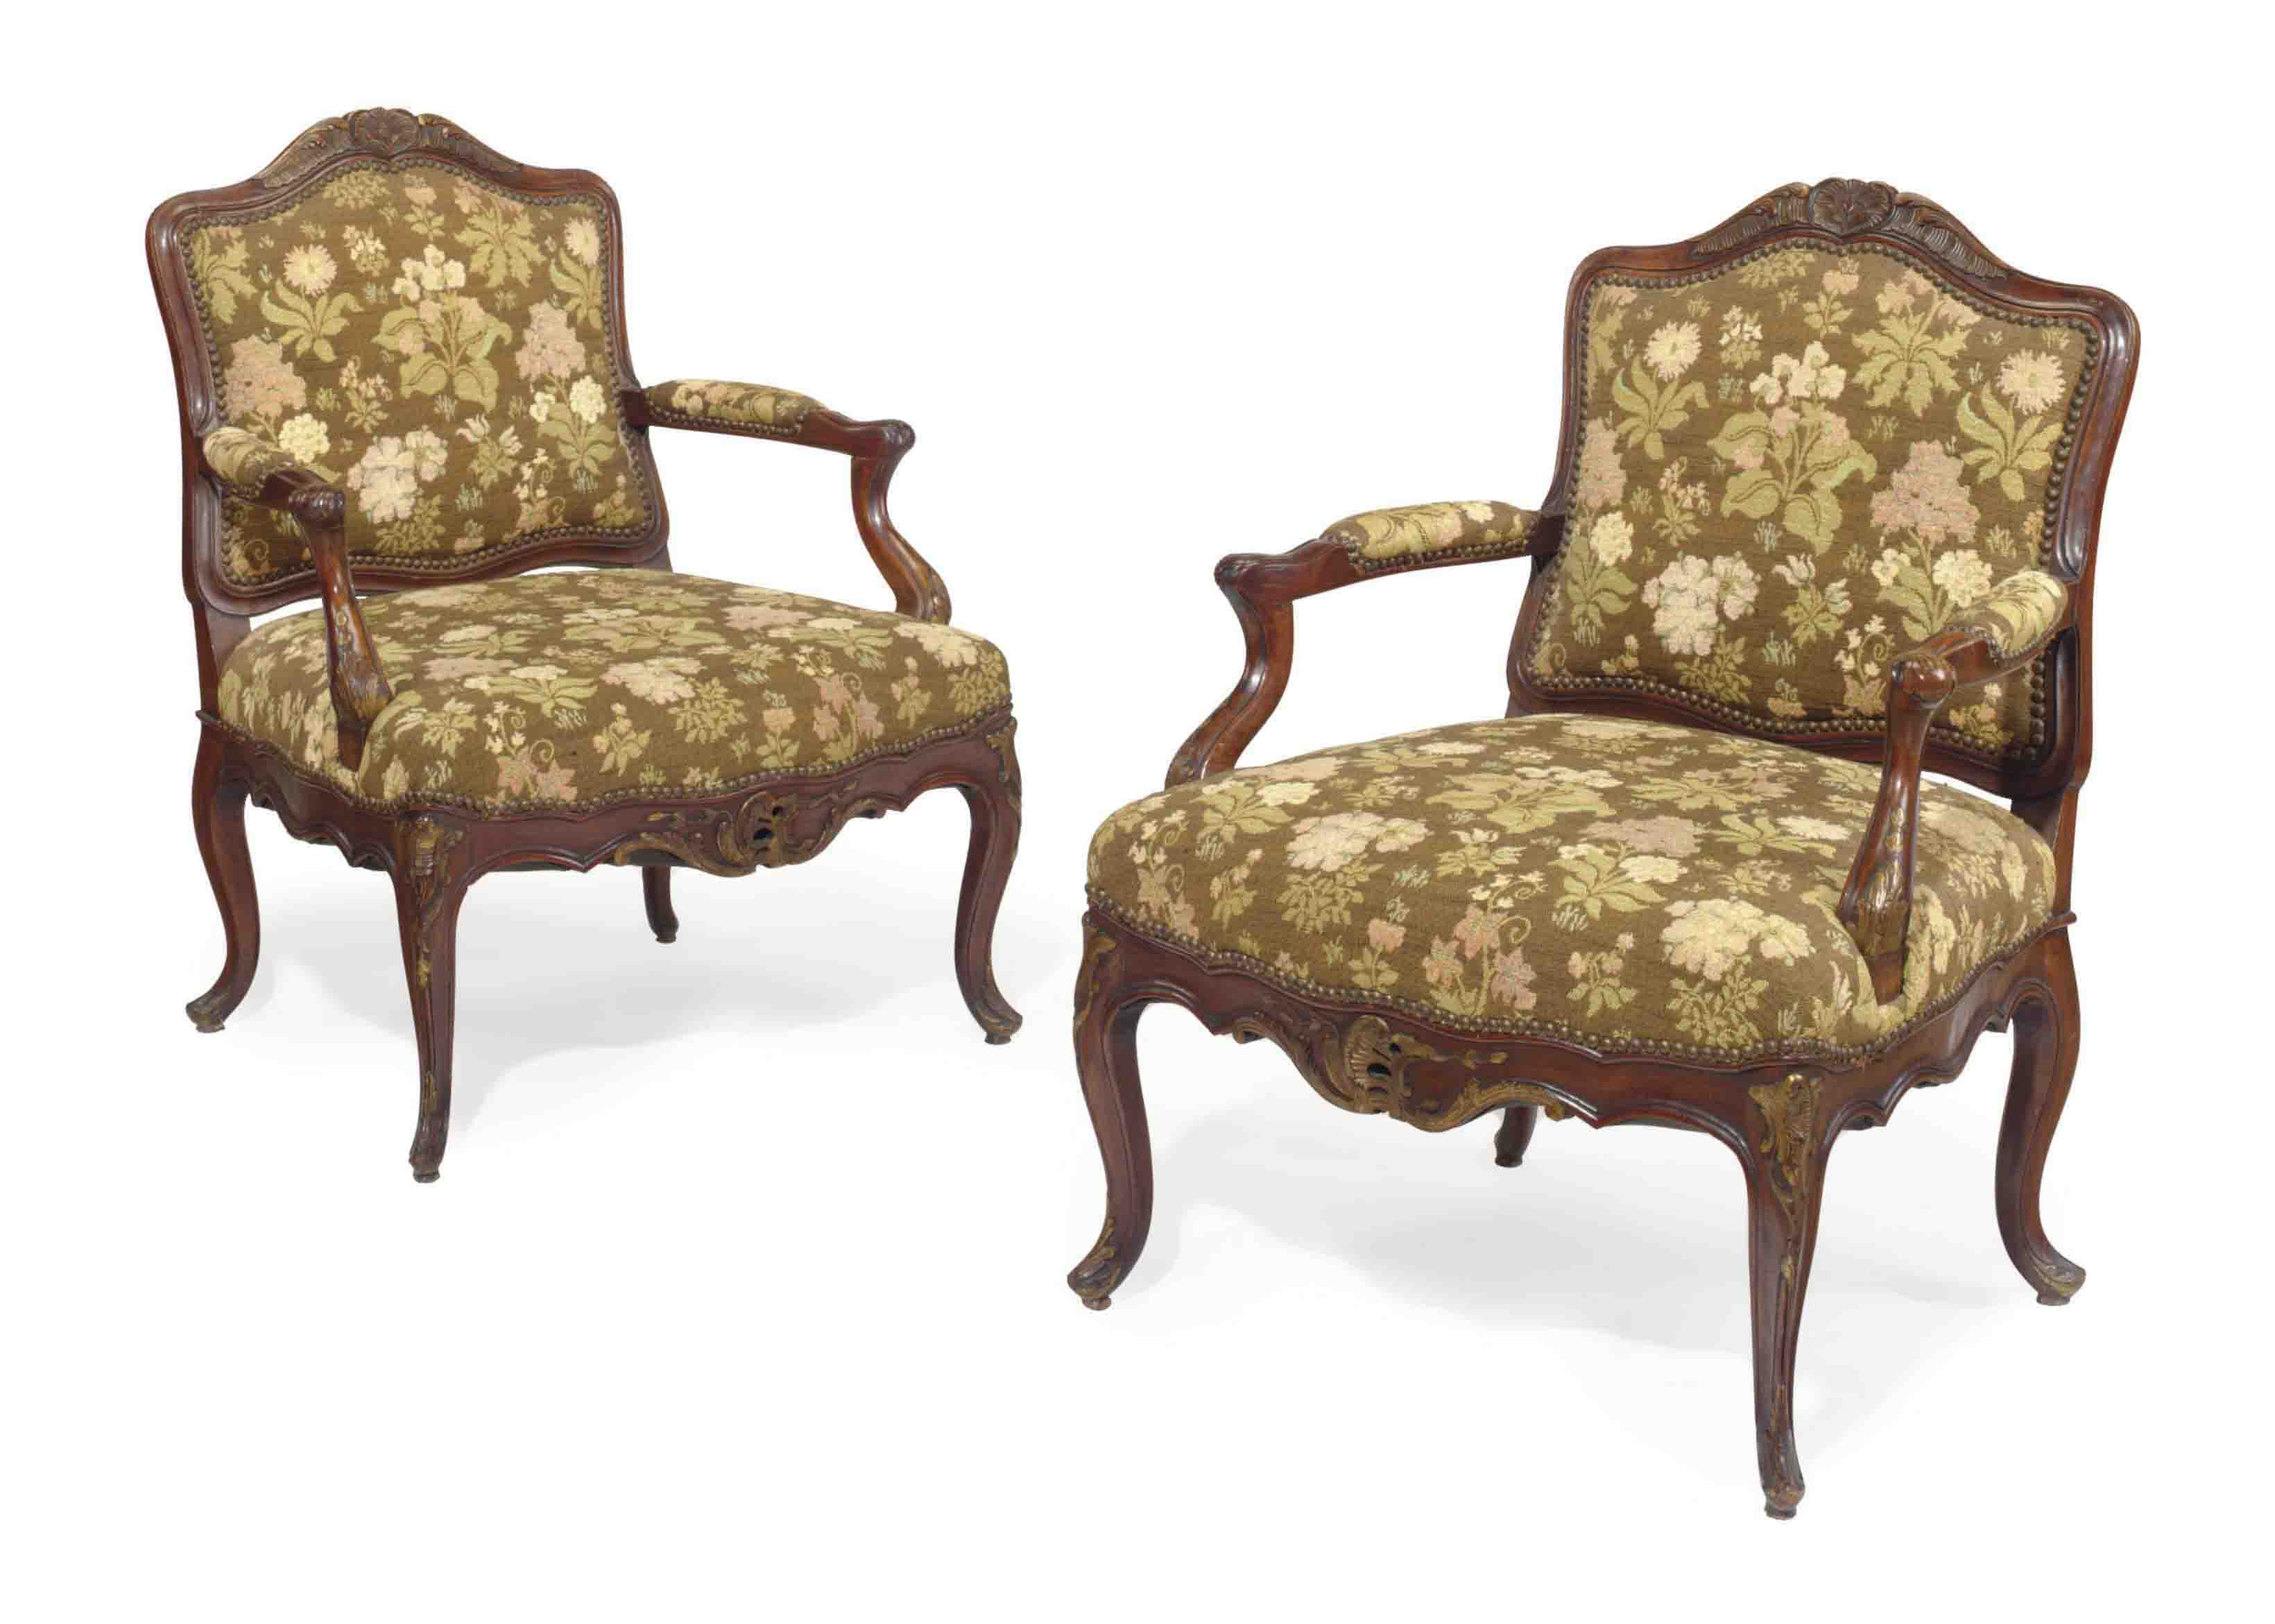 A PAIR OF FRENCH PARCEL-GILT MAHOGANY FAUTEUILS,